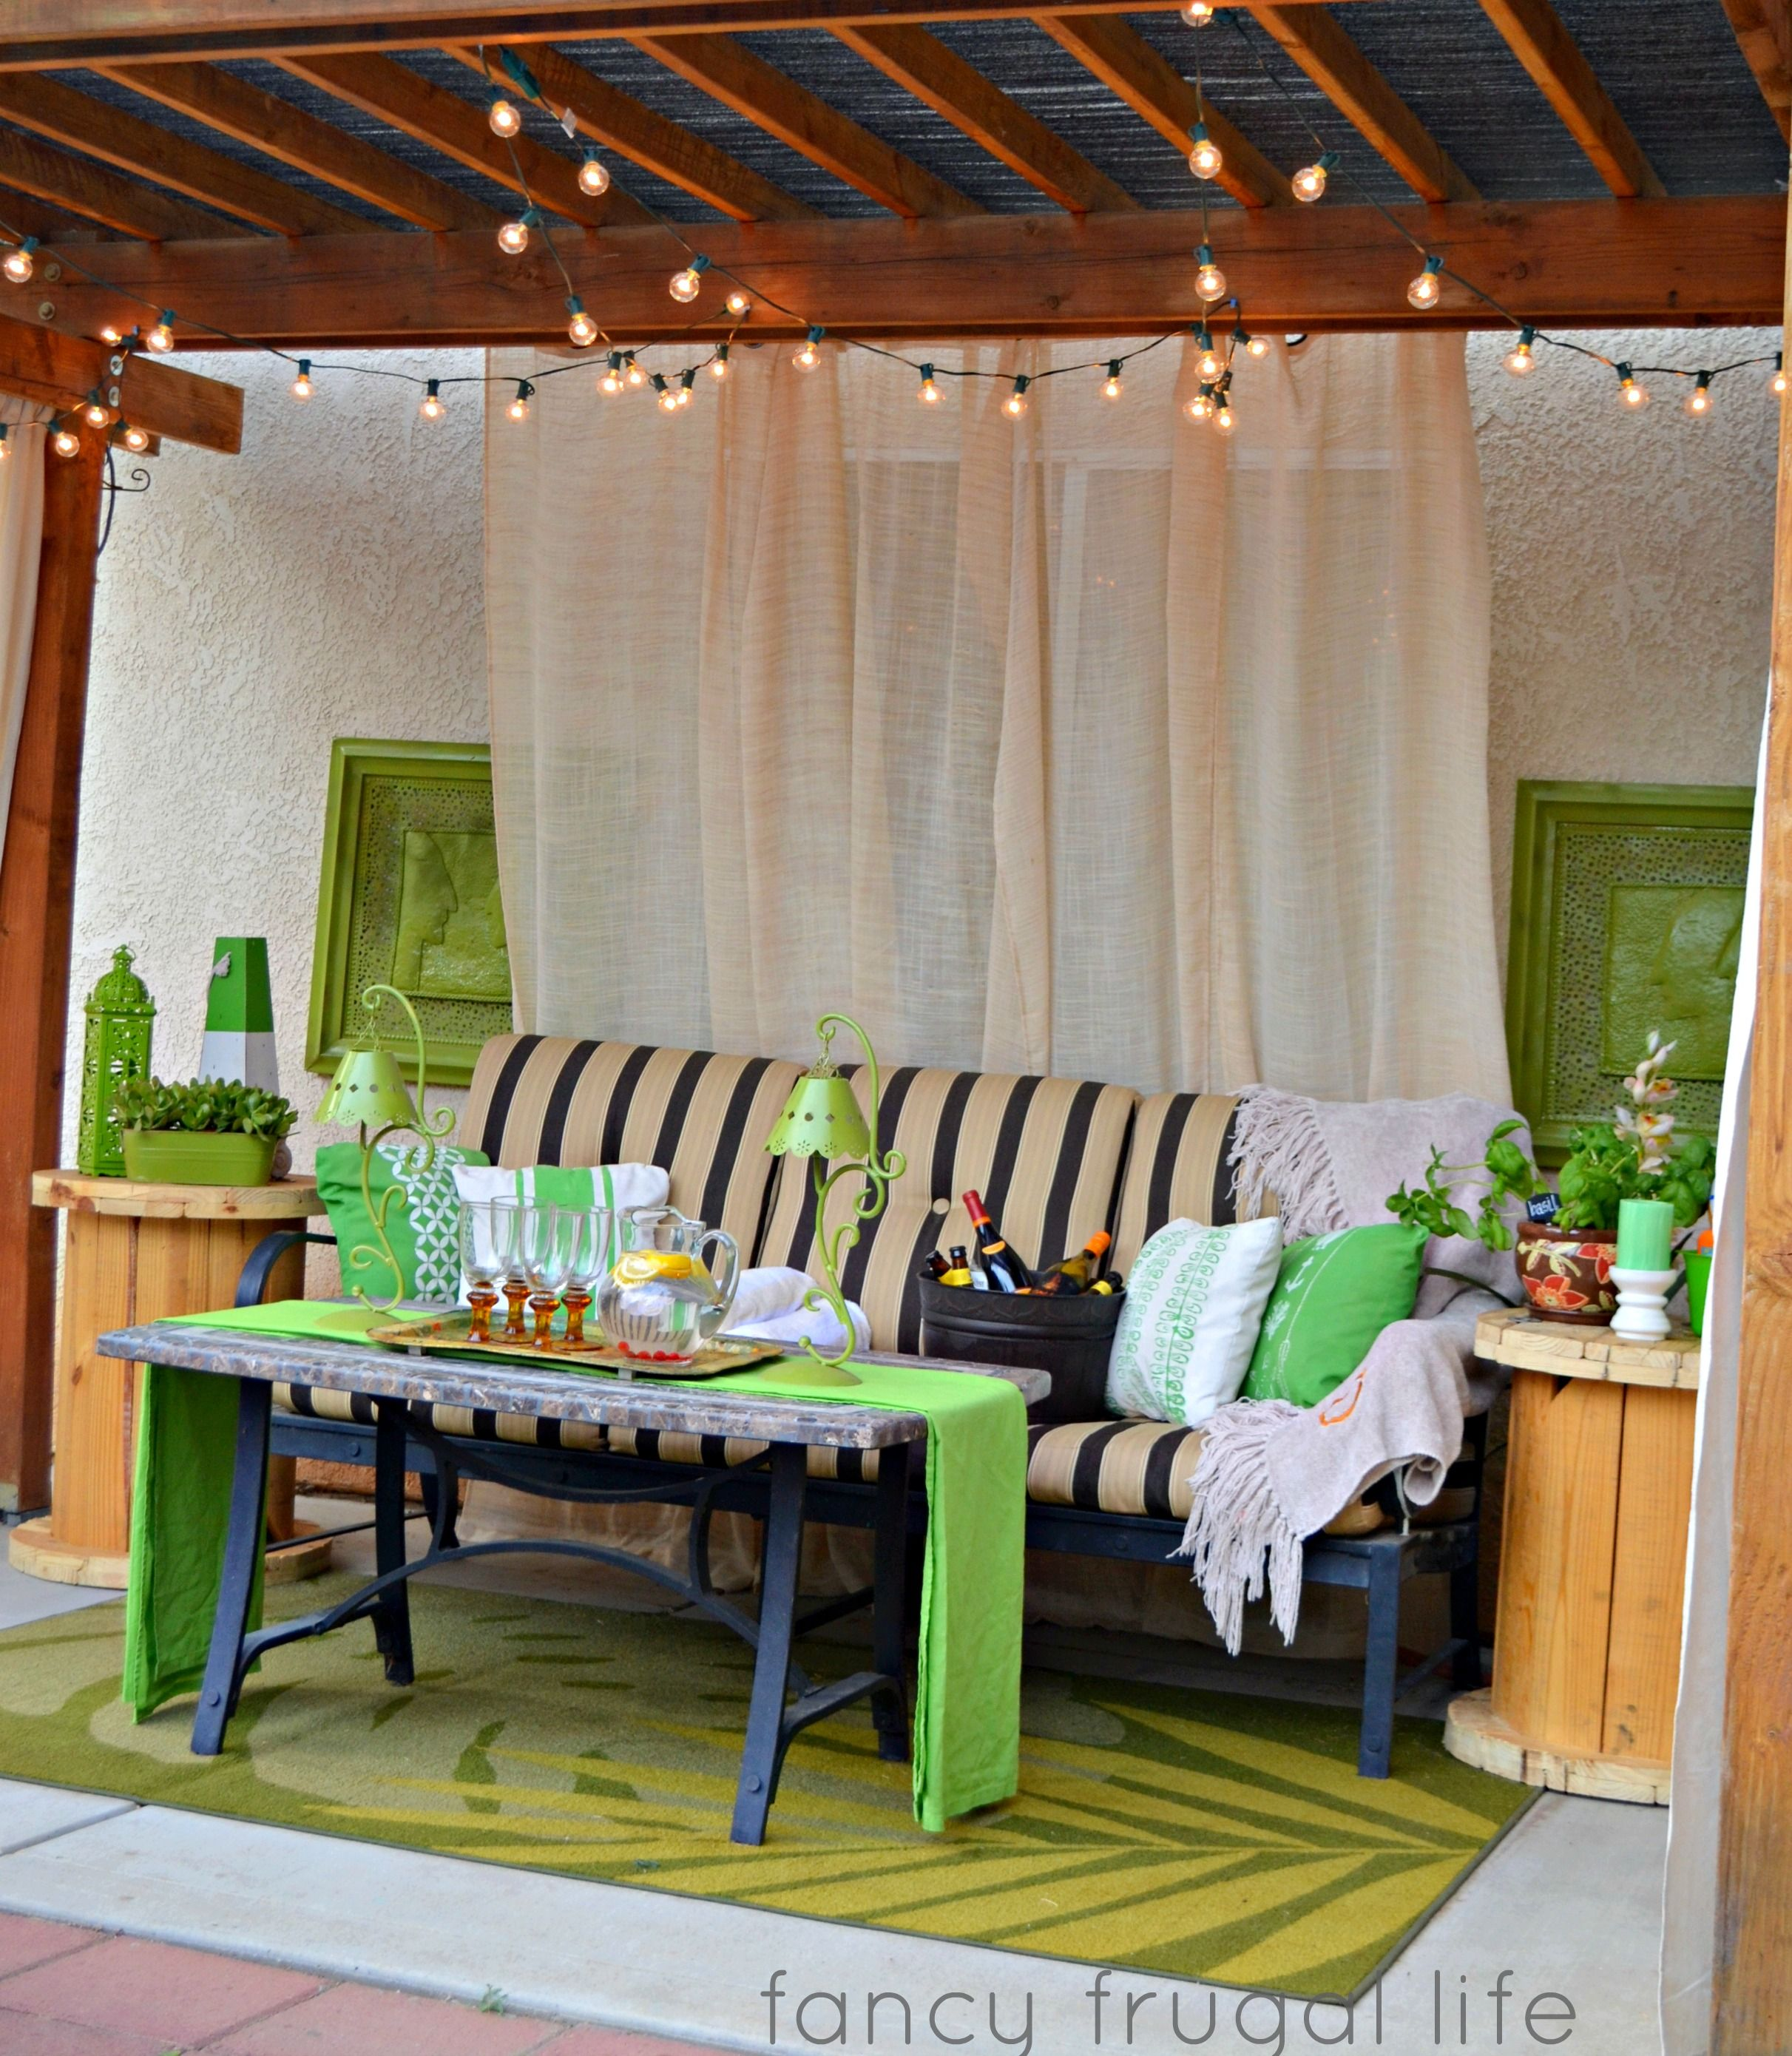 "Cabana"" Patio Makeover with DIY Drop Cloth Curtains 